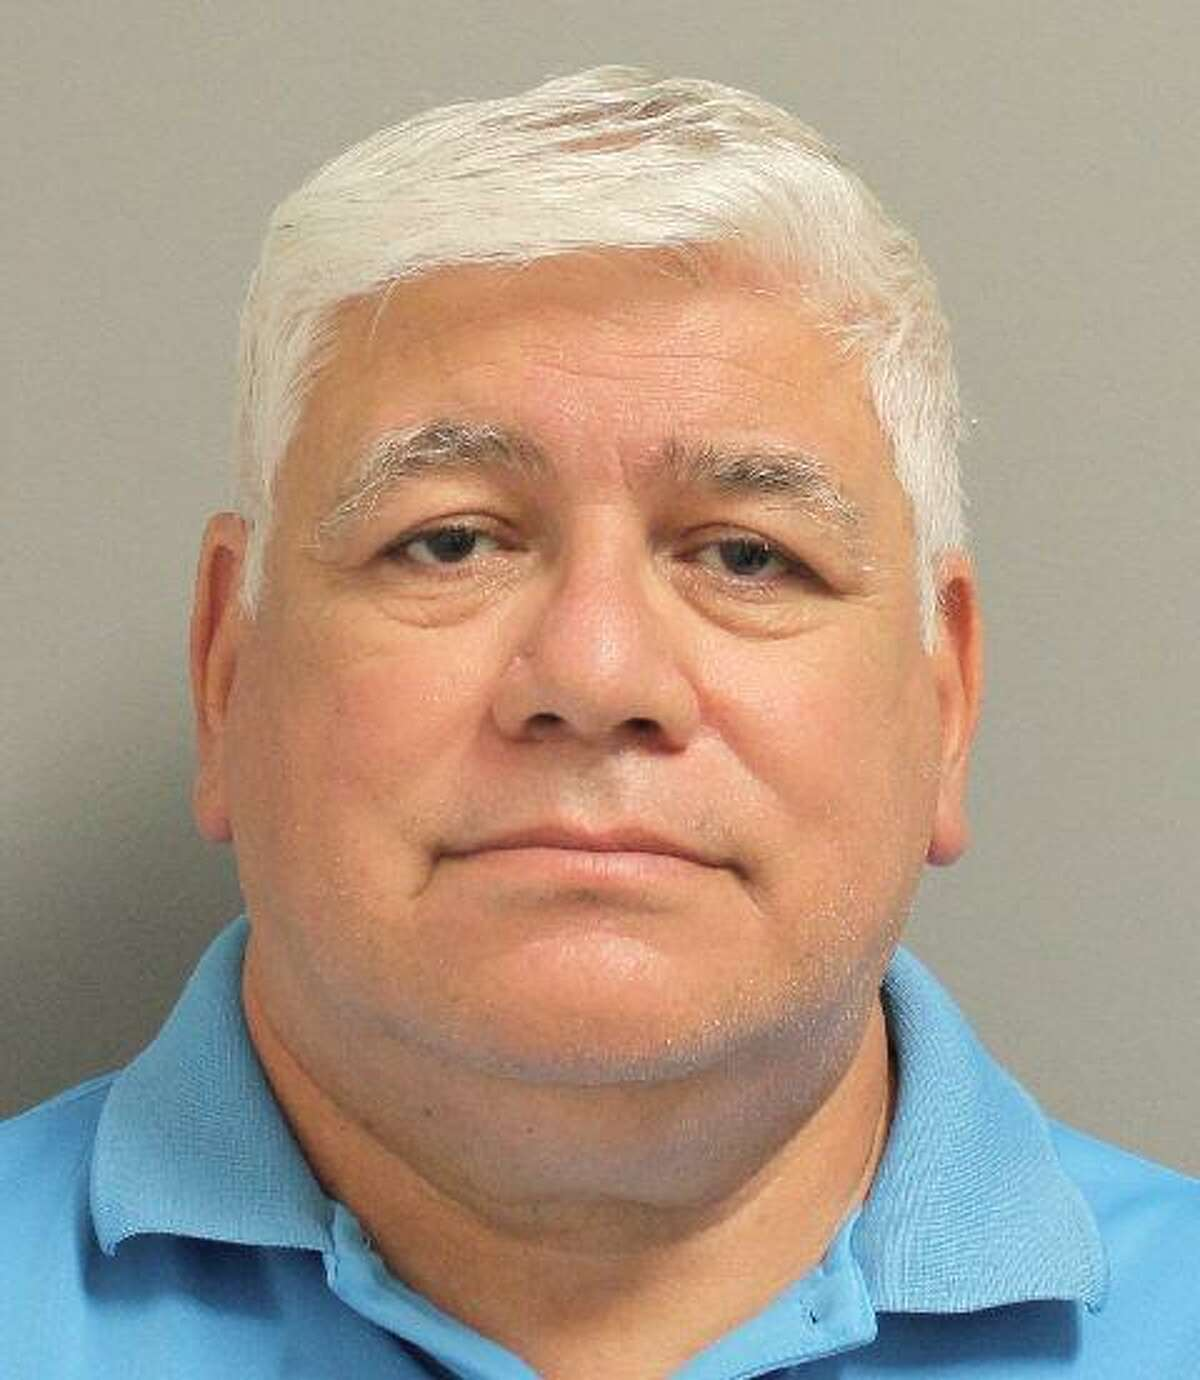 Robert Gonzales, one of four additional former Houston Police narcotics officers Kim Ogg charged with crimes stemming from an investigation into the deadly 2019 drug raid at 7815 Harding street that killed two homeowners.